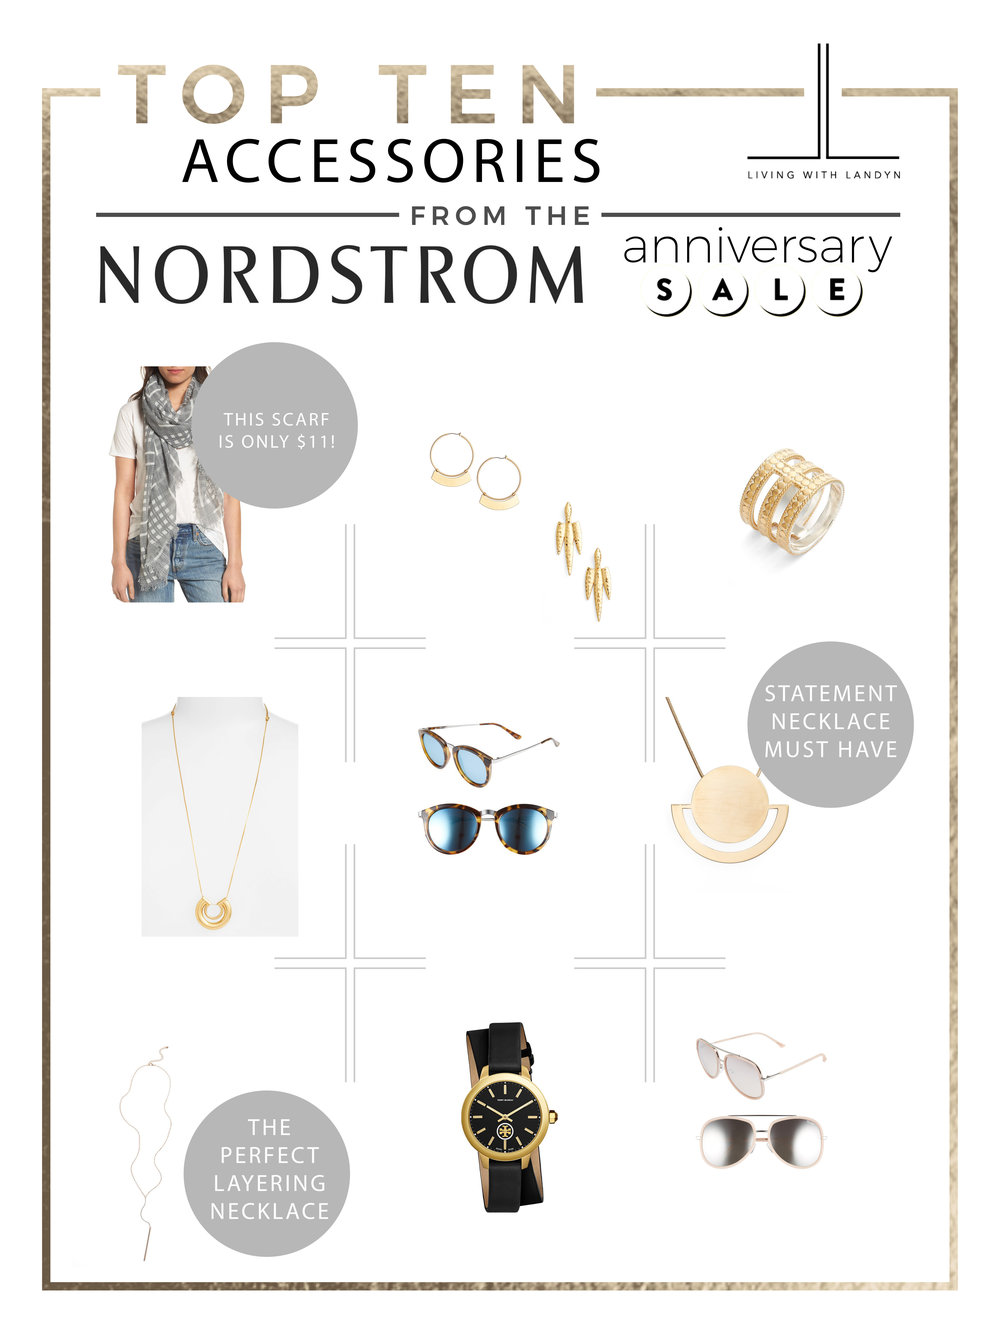 TOP 10 ACCESSORIES PICKS NORDSTROM ANNIVERSARY SALE